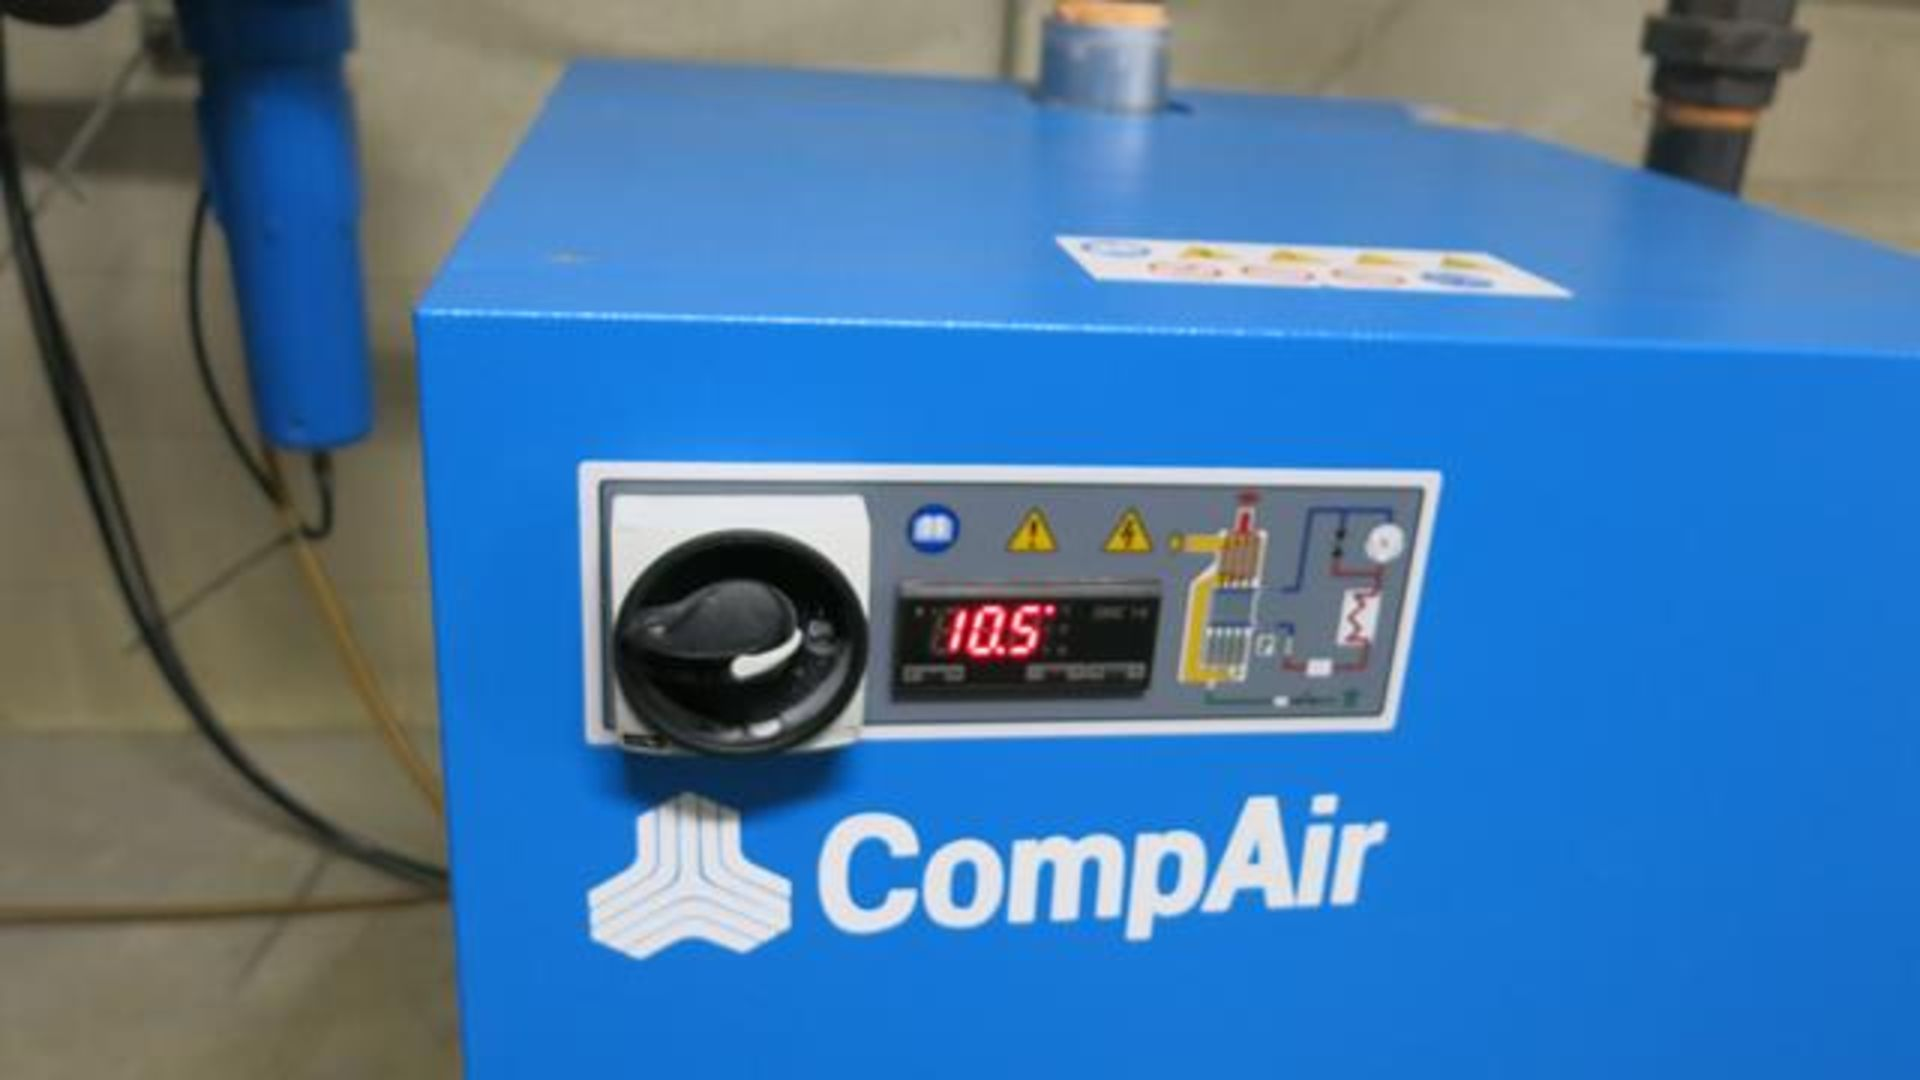 Lot 289 - COMPAIR, CCT35OUE_350 CFM, REFRIGERATED AIR DRYER, S/N 17R009499/17